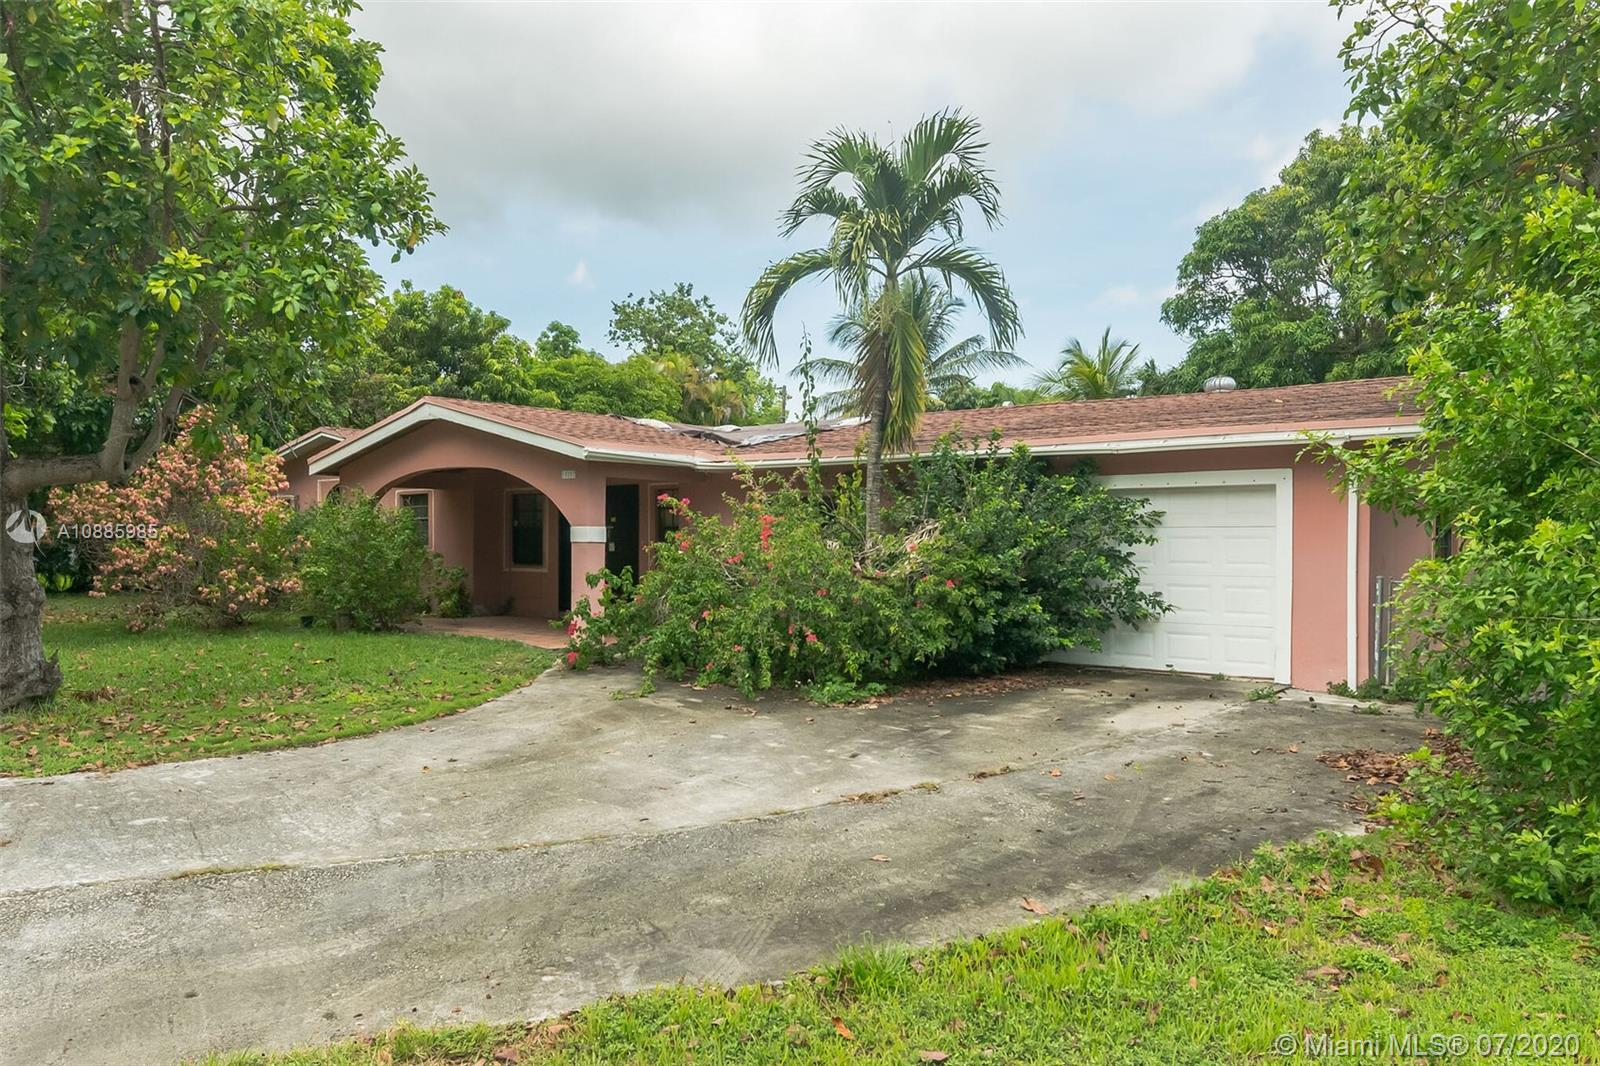 15287 SW 87th Ct, Palmetto Bay, Florida 33157, 3 Bedrooms Bedrooms, ,2 BathroomsBathrooms,Residential,For Sale,15287 SW 87th Ct,A10885985